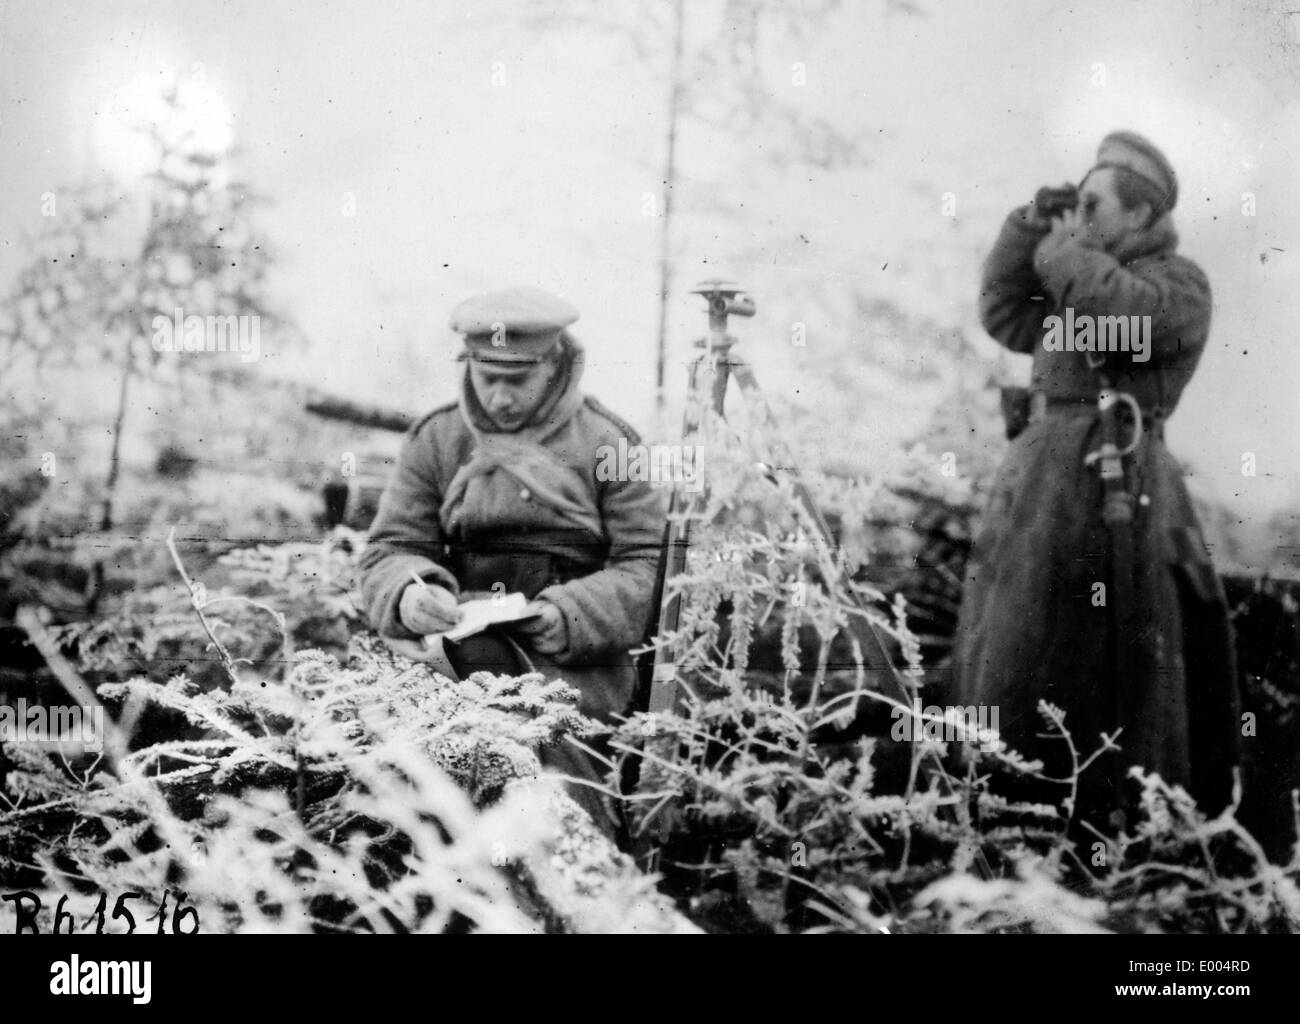 Russian observation post in the First World War - Stock Image